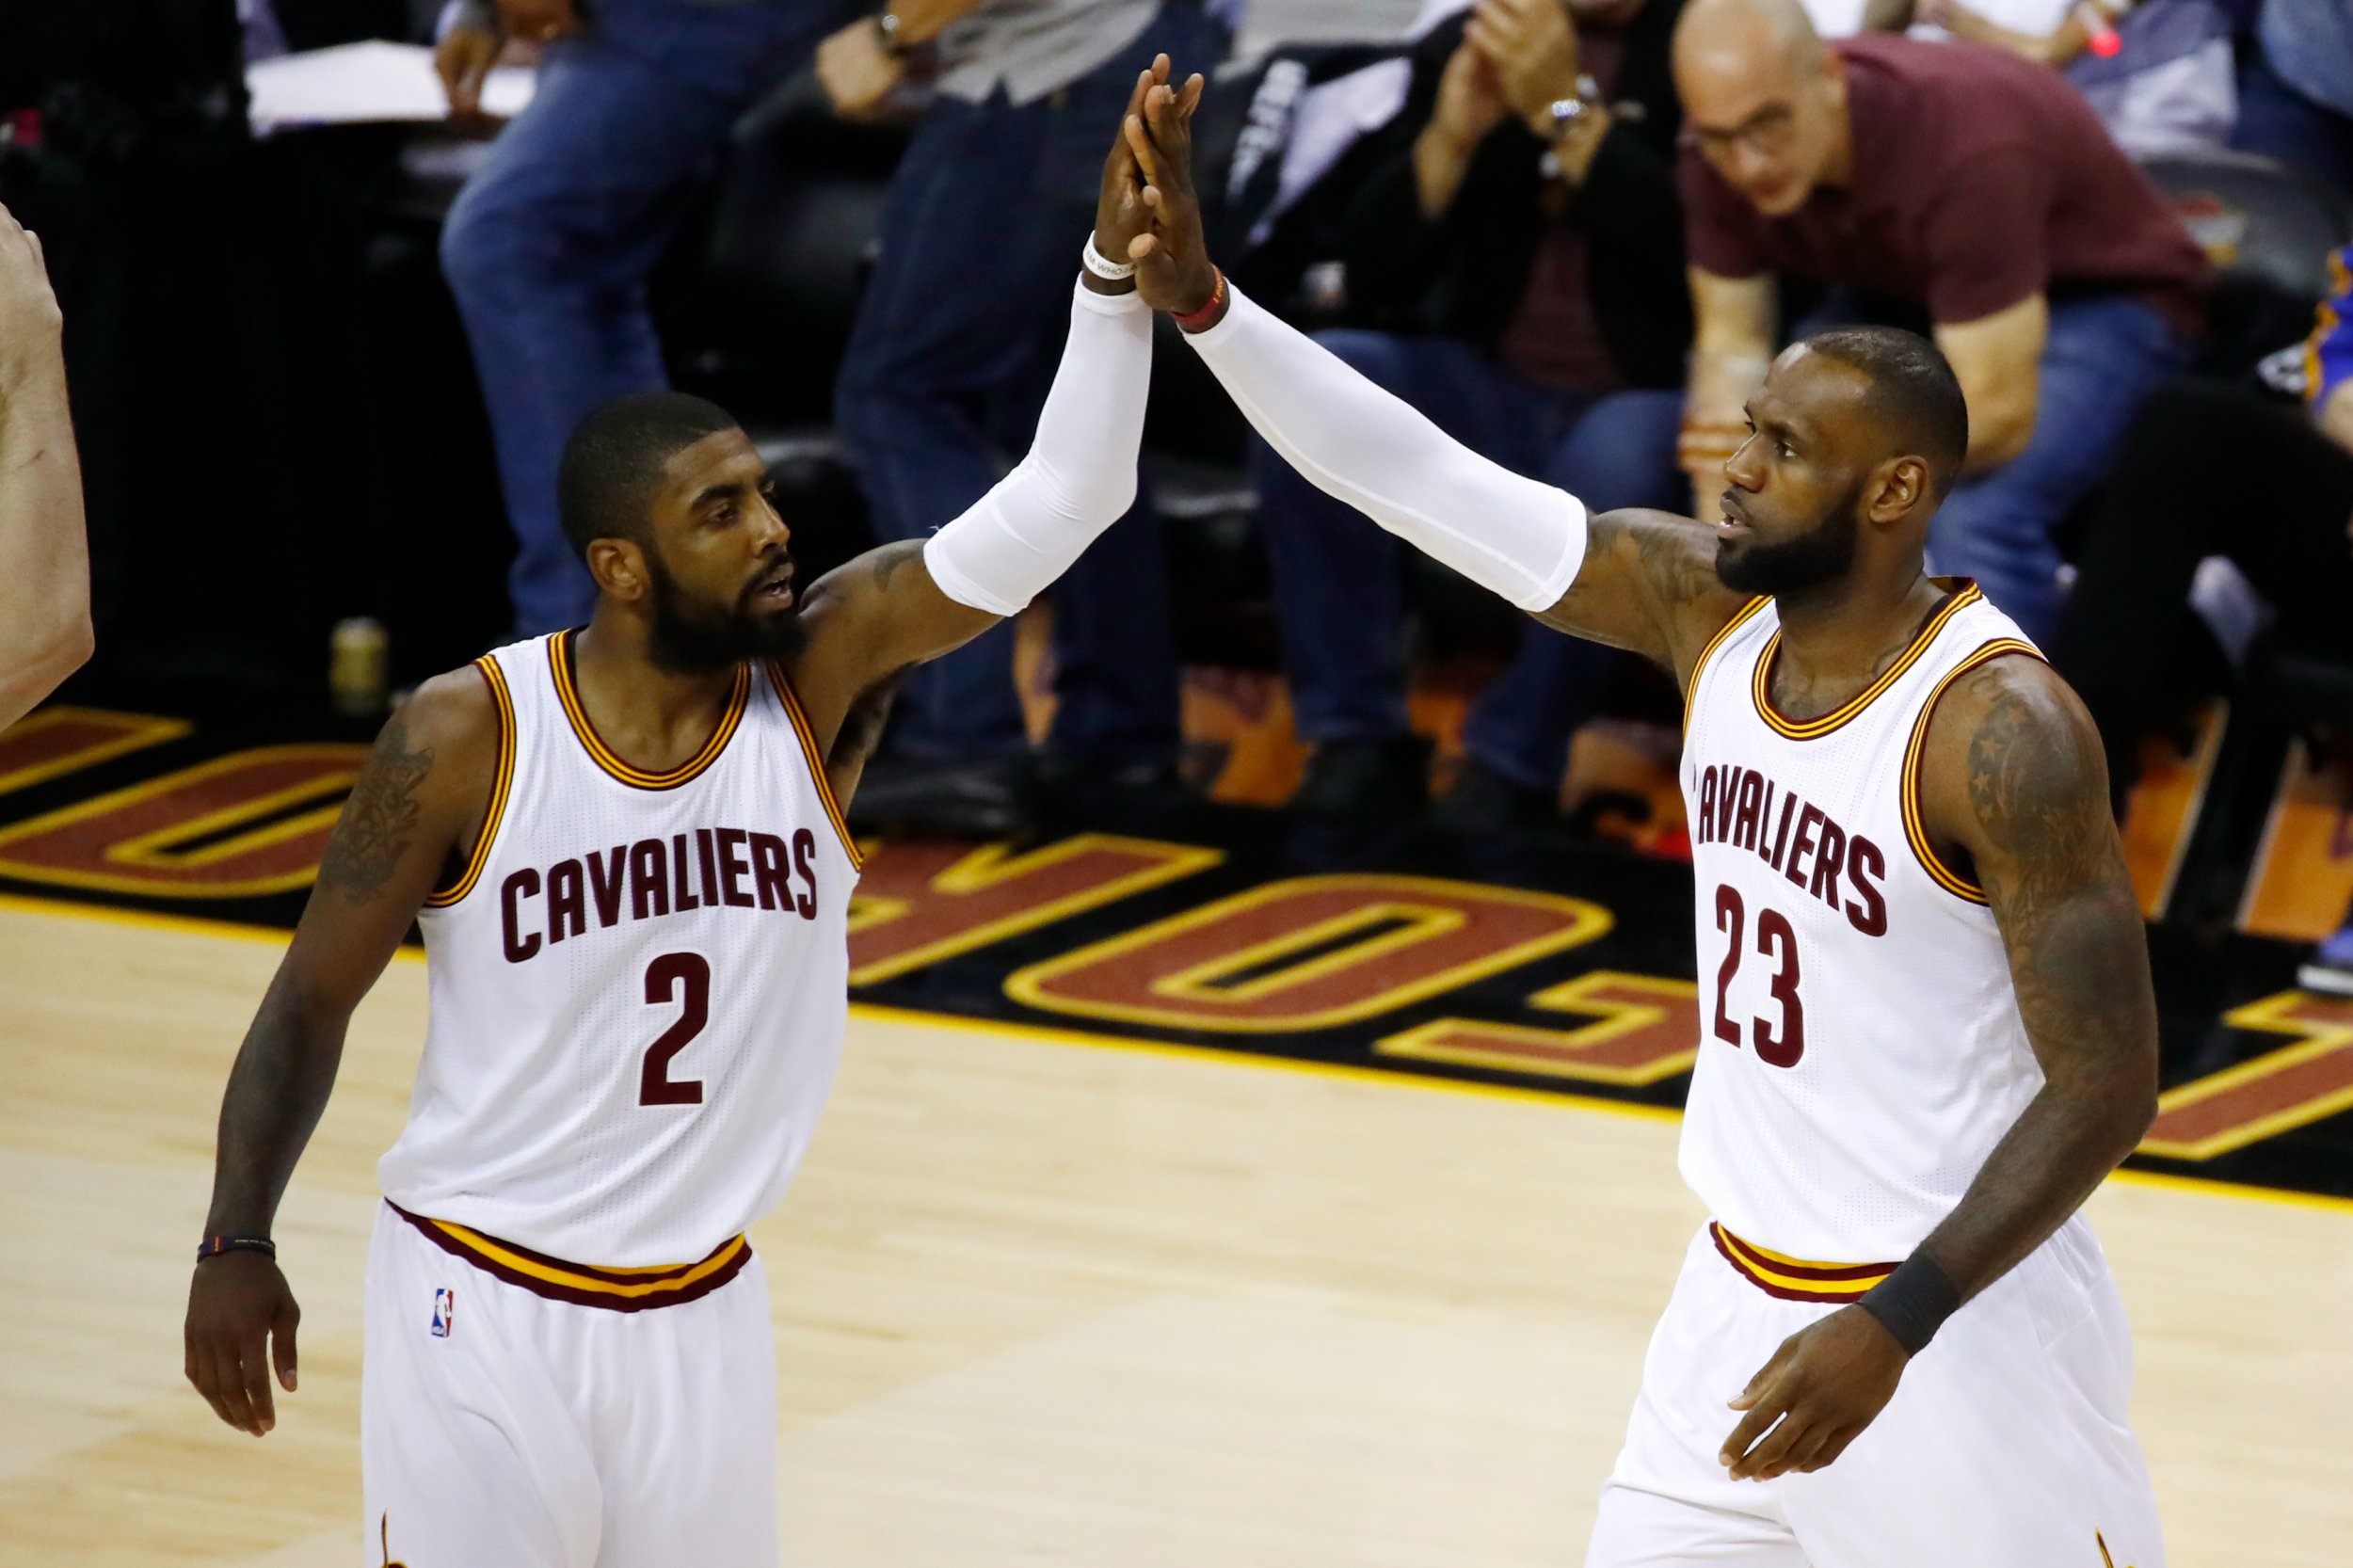 Kyrie Irving, left, and LeBron James of the Cleveland Cavaliers.